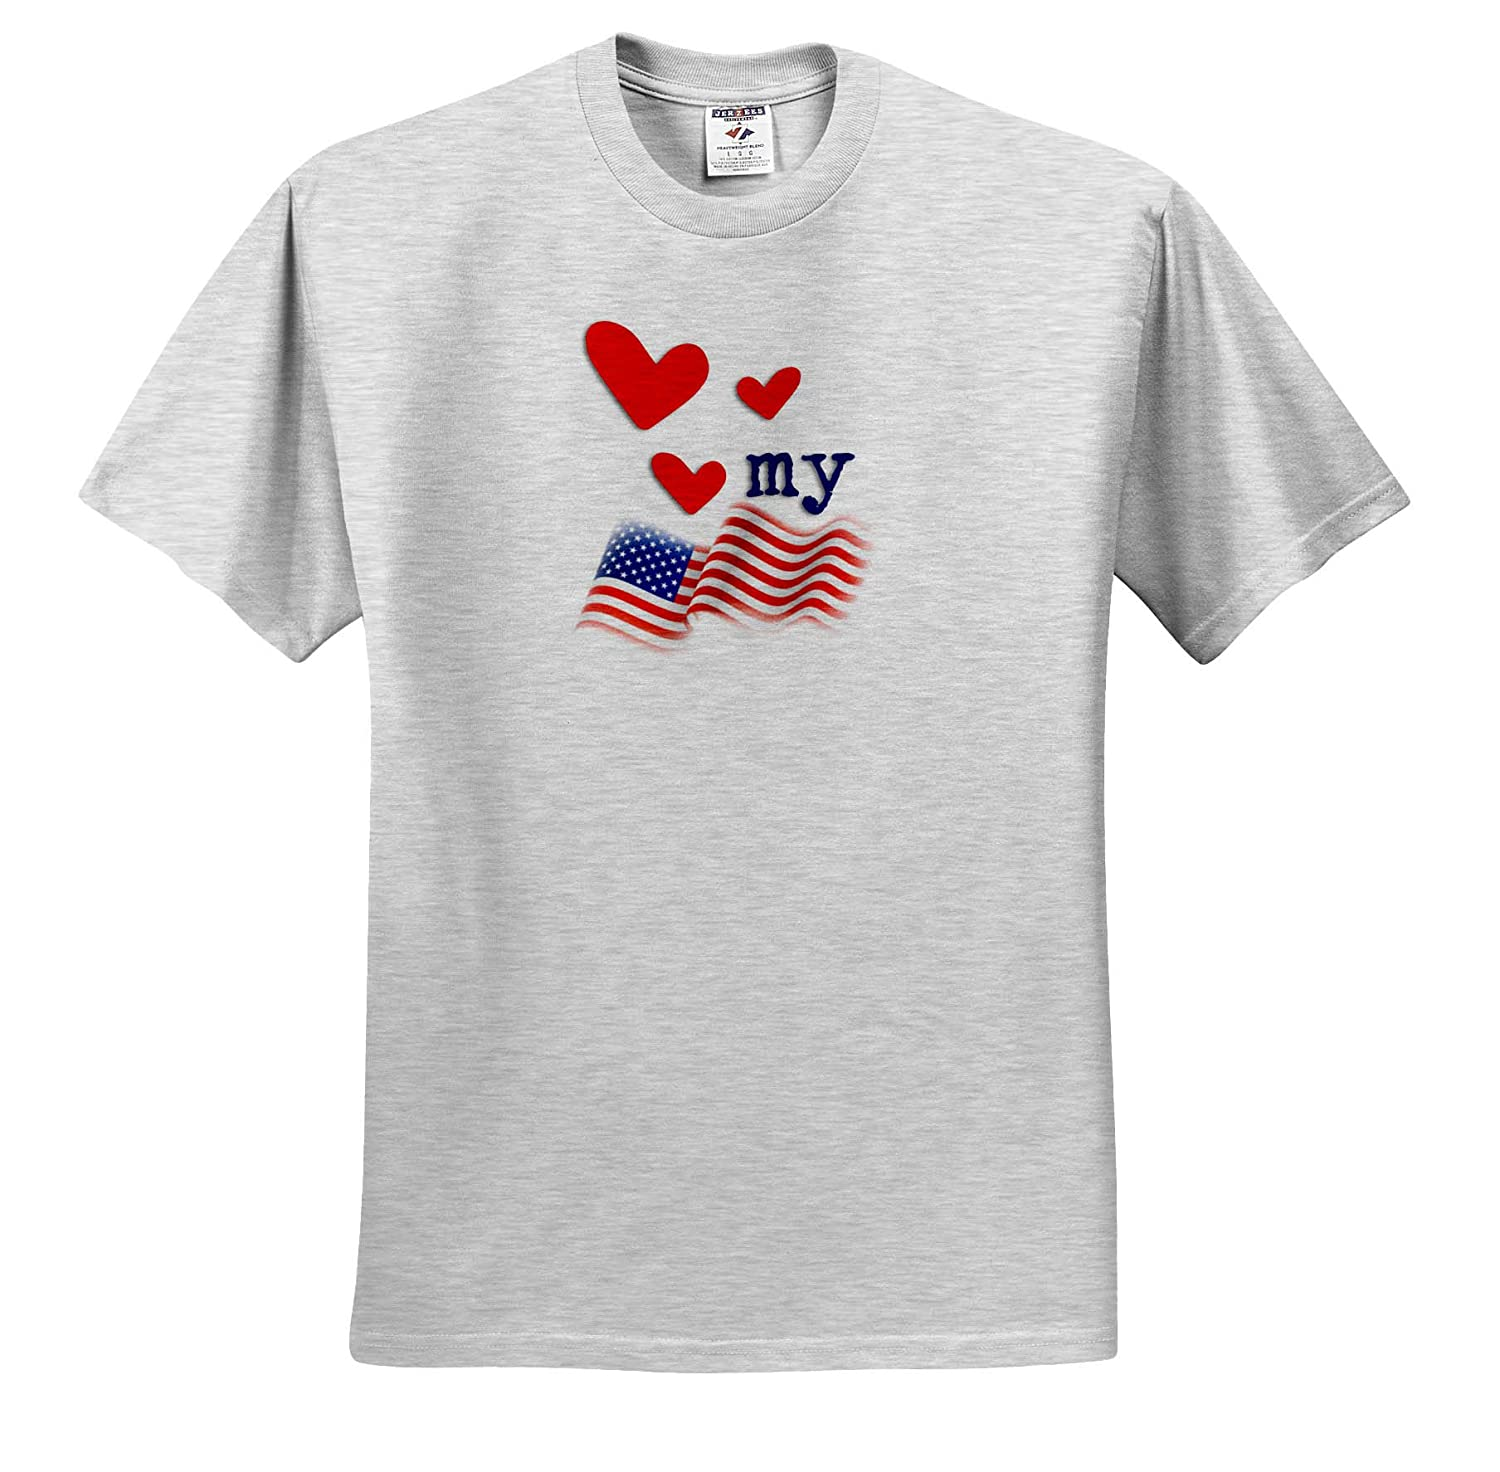 ts/_320040 Image Quote Love My Flag Adult T-Shirt XL 3dRose Carrie Quote Image